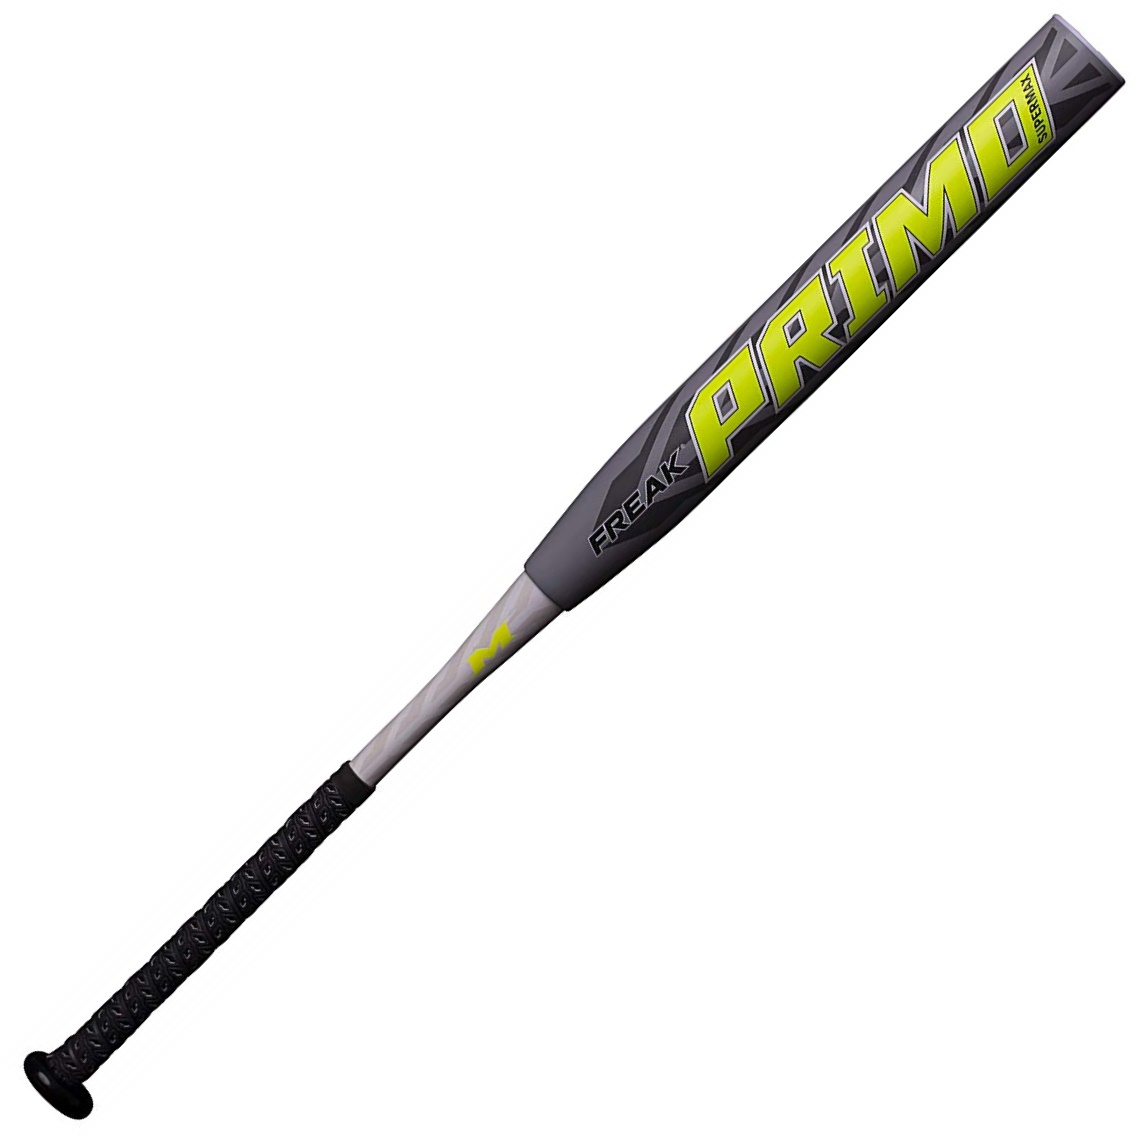 miken-freak-primo-14-inch-supermax-usssa-slowpitch-bat-34-inch-28-oz MPMOSU-3-28 Miken 658925043840 Mikens Triple Matrix Core + Tech increases our exclusive material volume